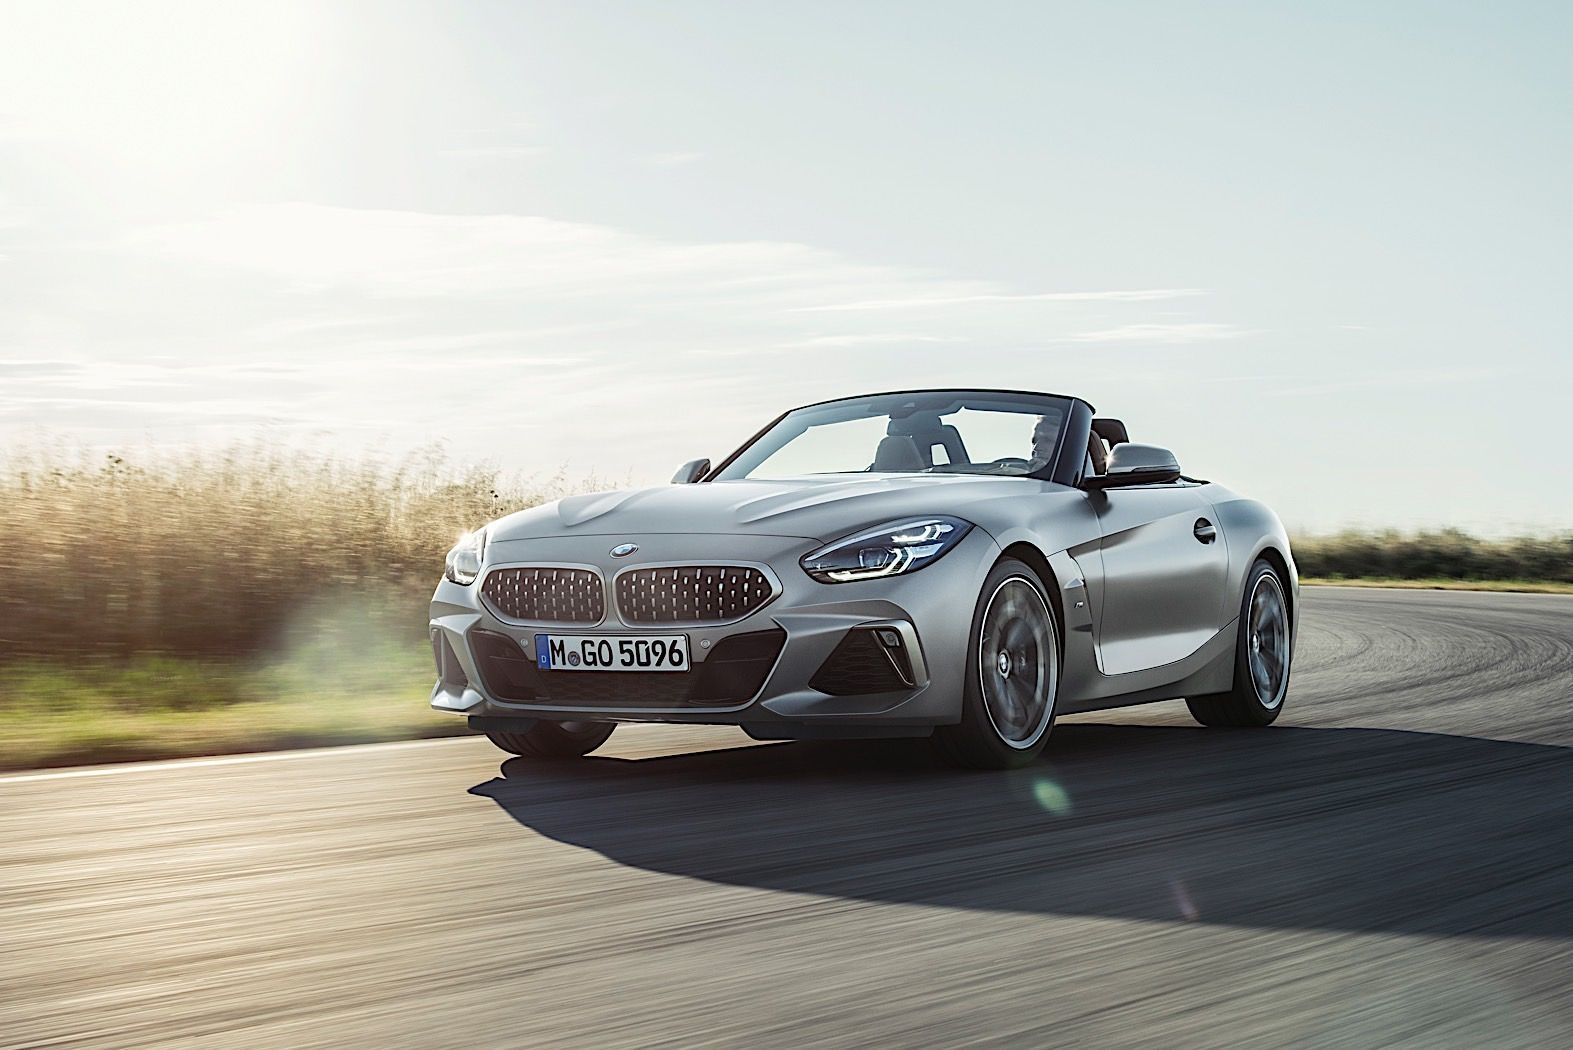 2020 Bmw Z4 Overview The Latest Information About New Cars Release Date Redesign And Rumors Our Coverage Also Includes Specs And Pricing Info The Latest Inf